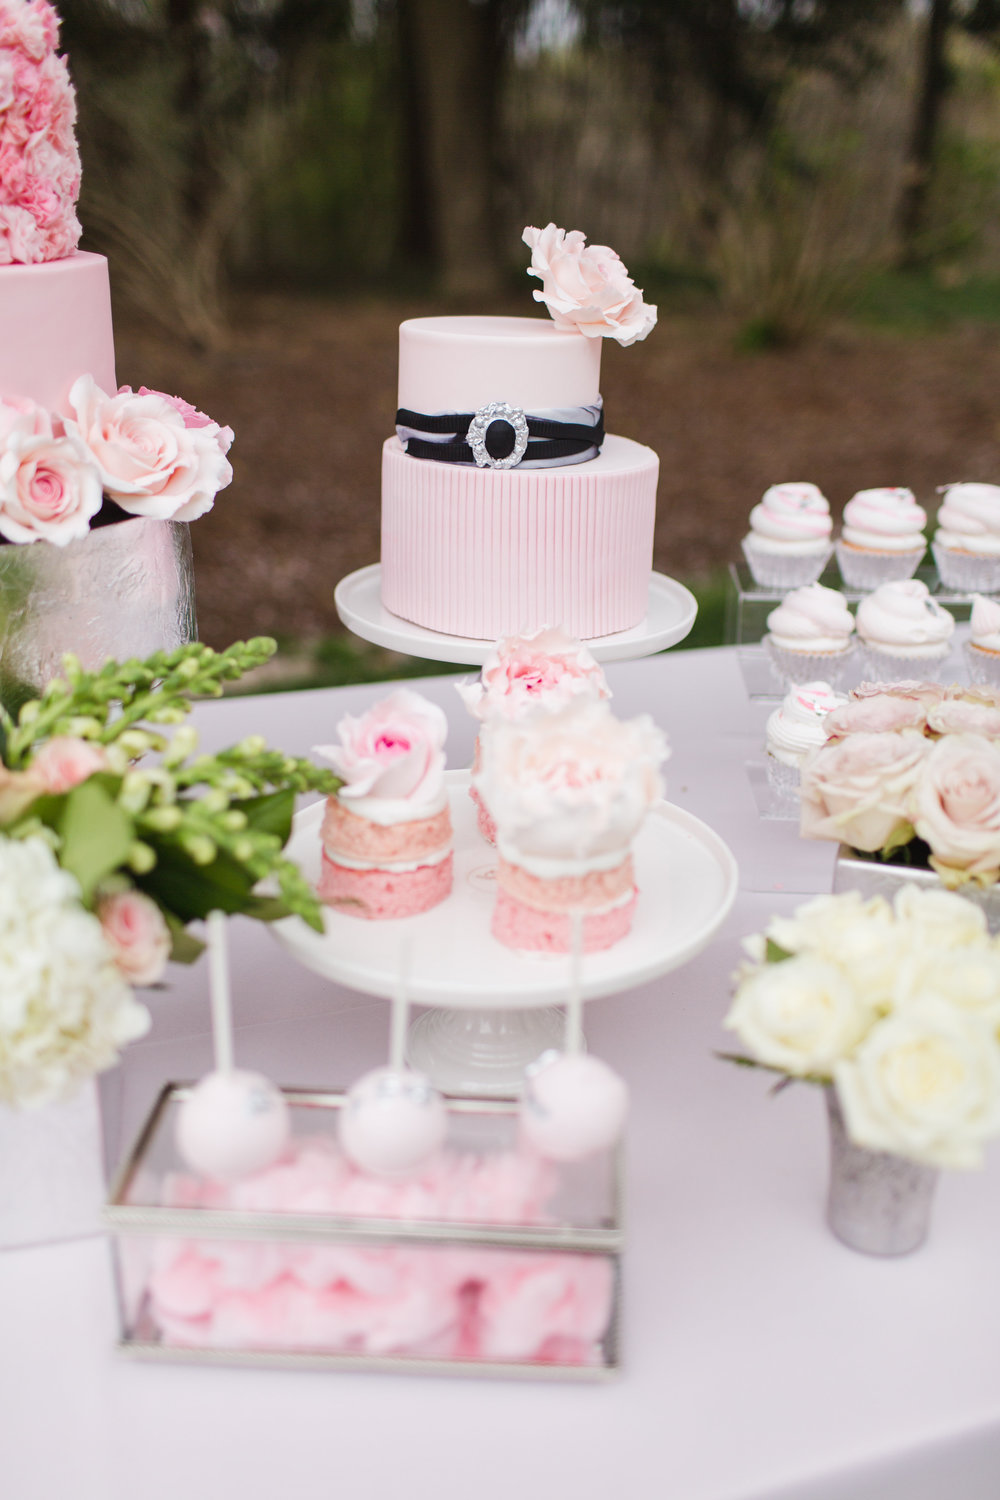 Cakes and Sweets-0110.jpg